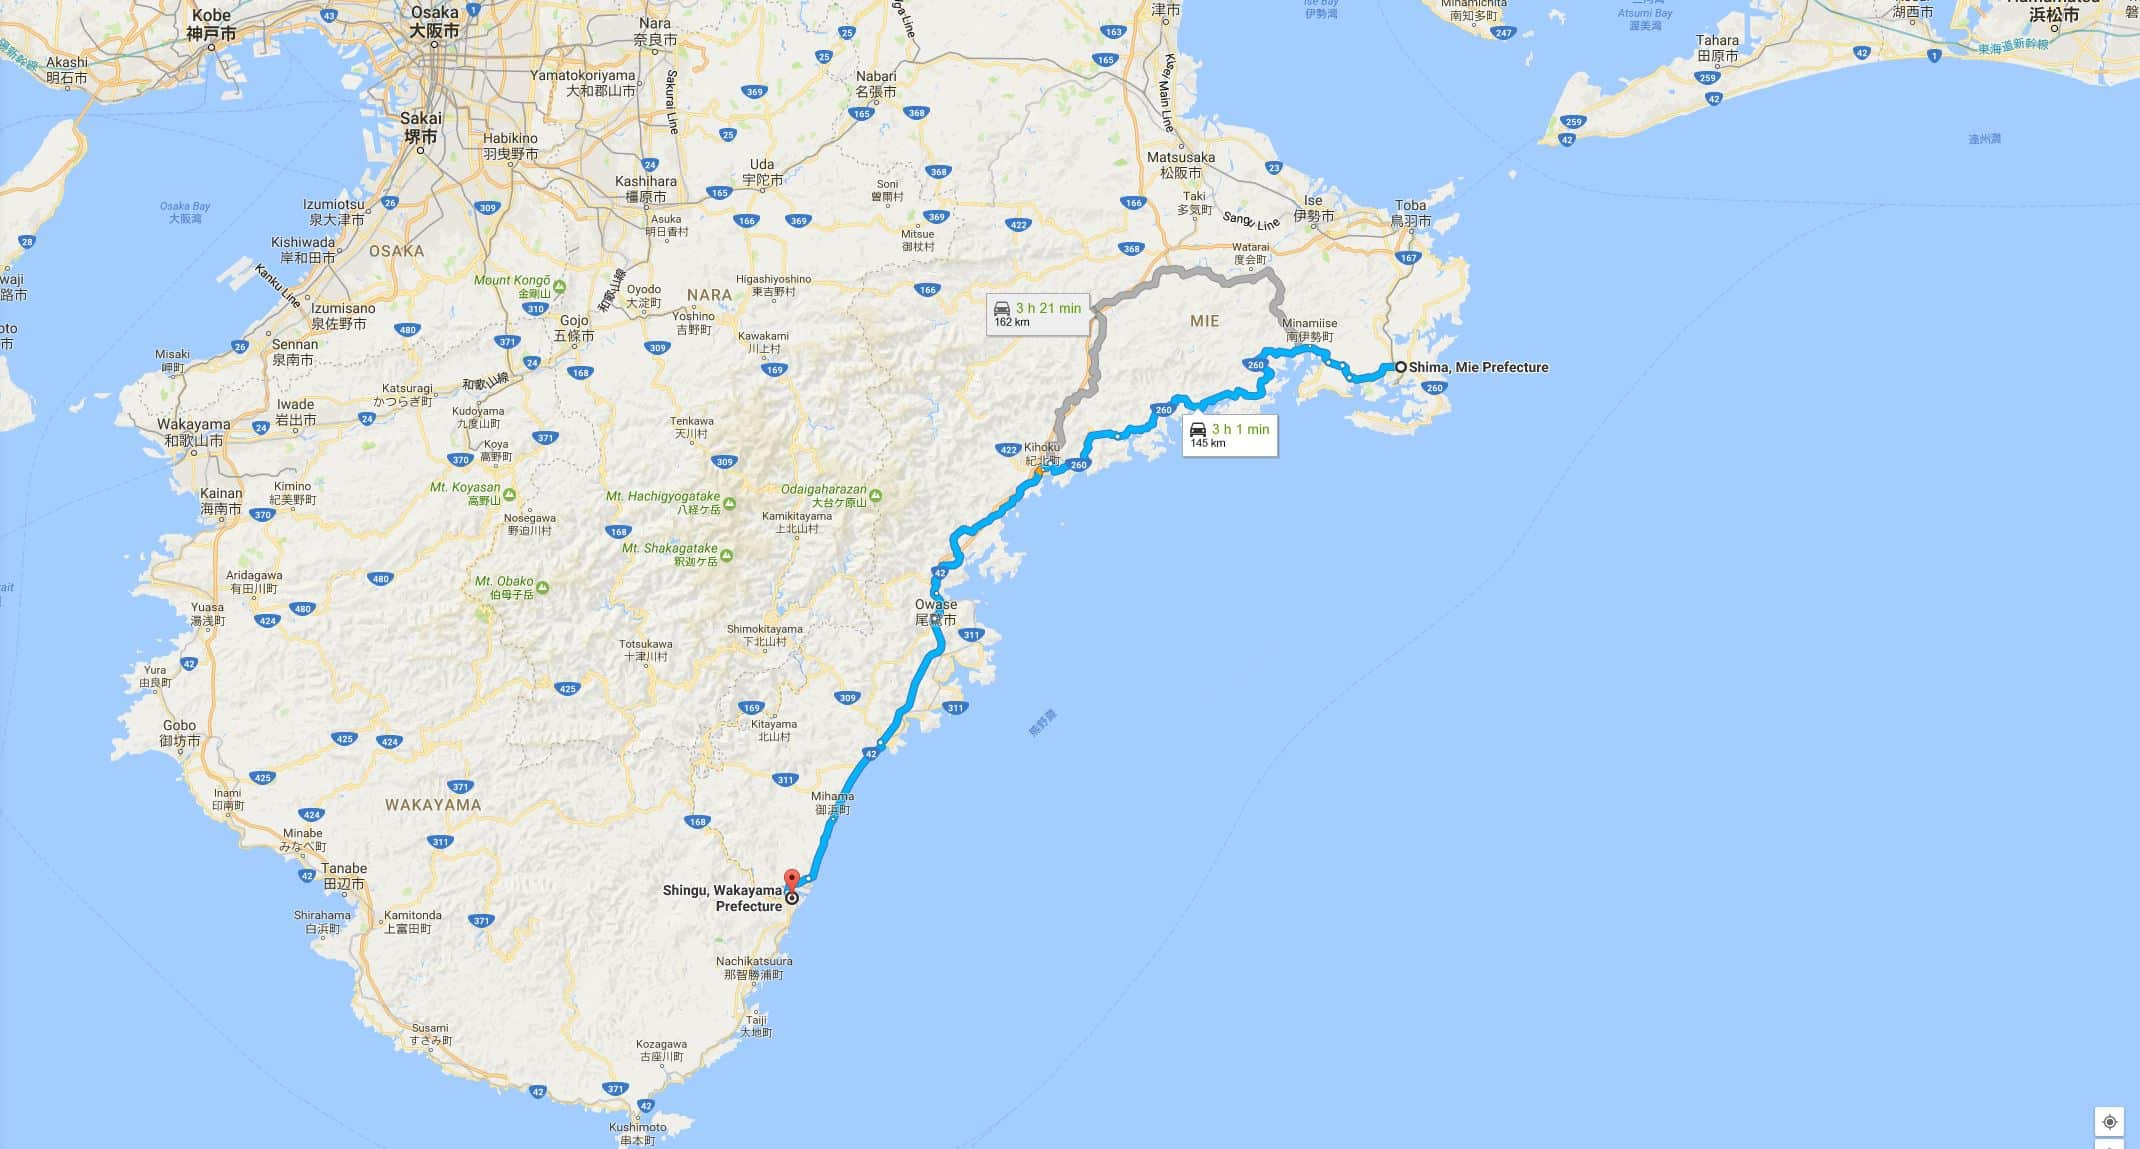 Route from Shima to Shingu